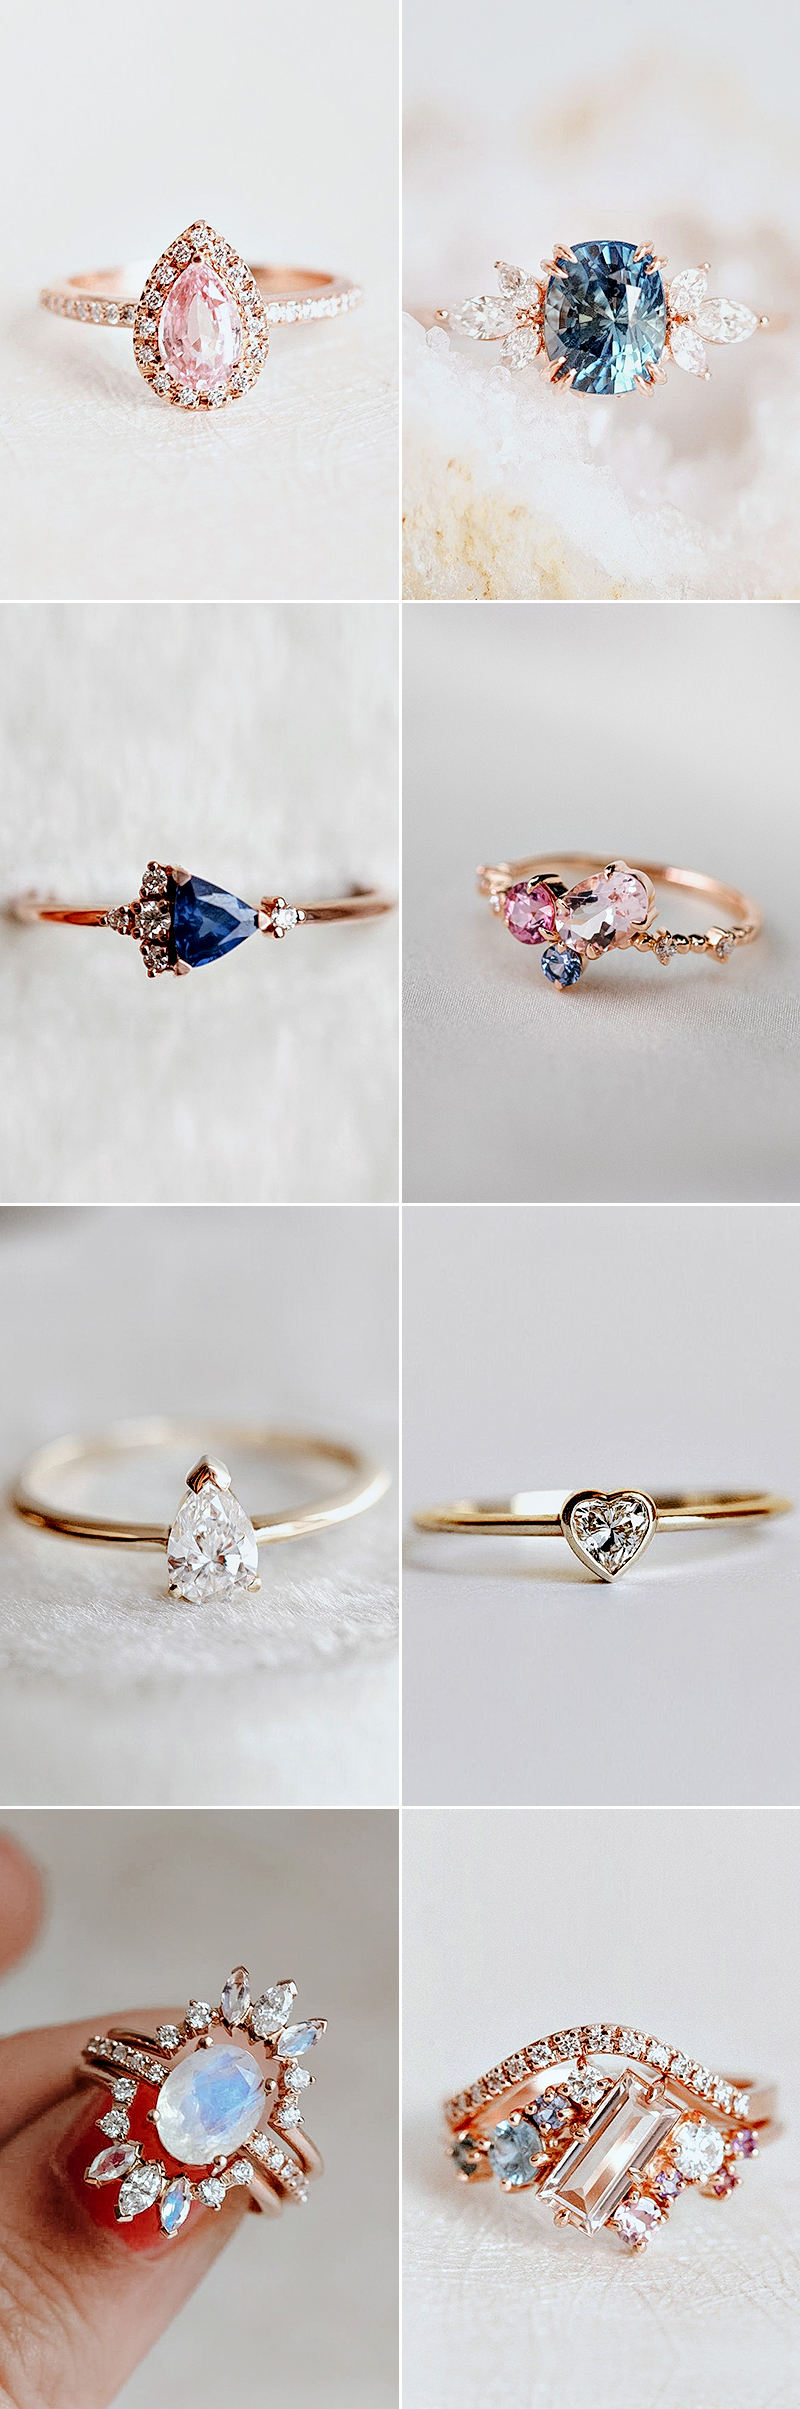 Praise wedding and family online shop - alternative engagement rings